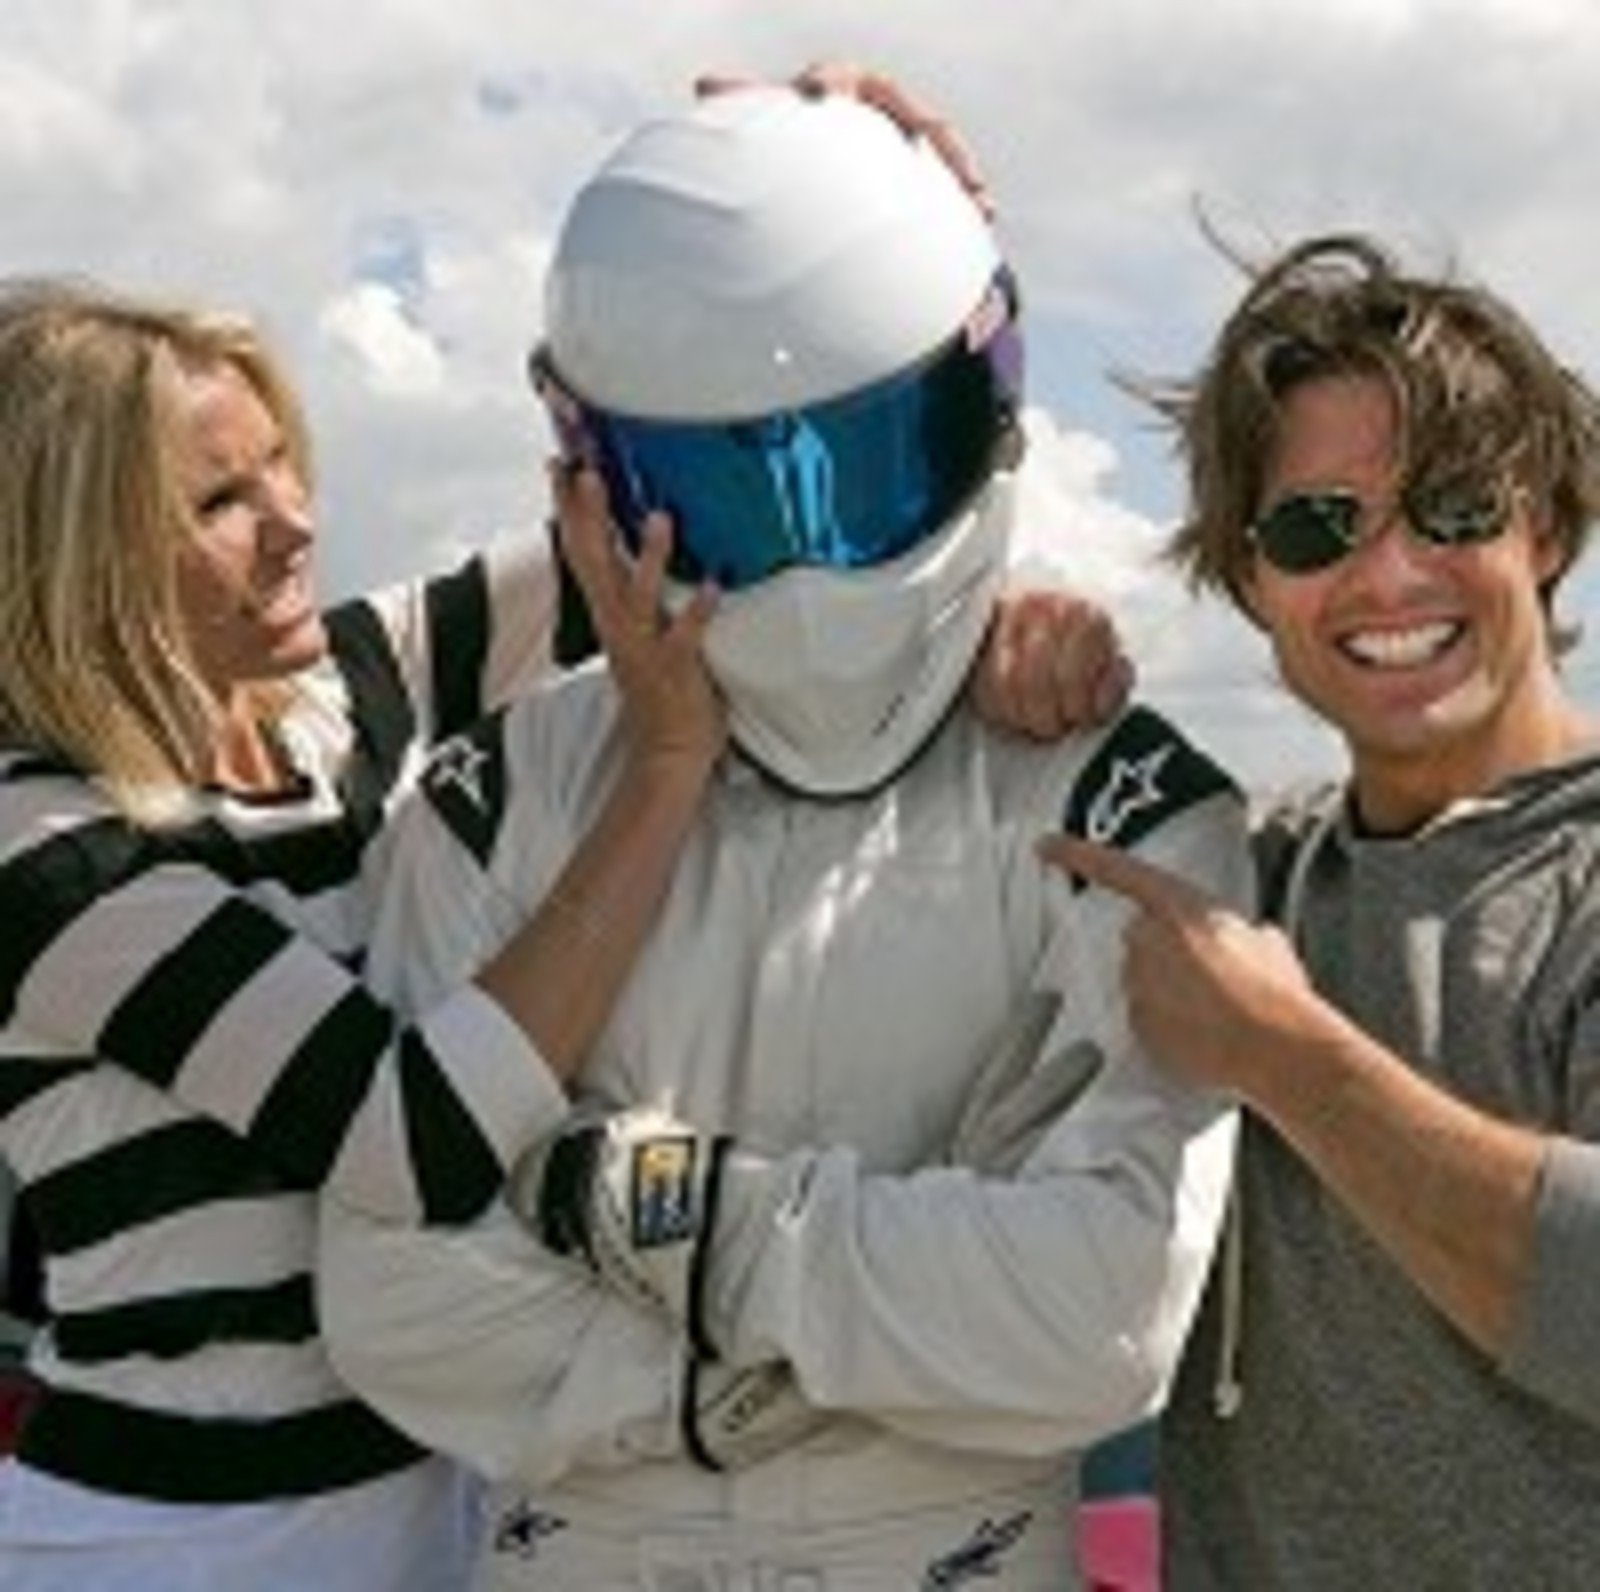 Top gear celebrity lap times 2019 movies